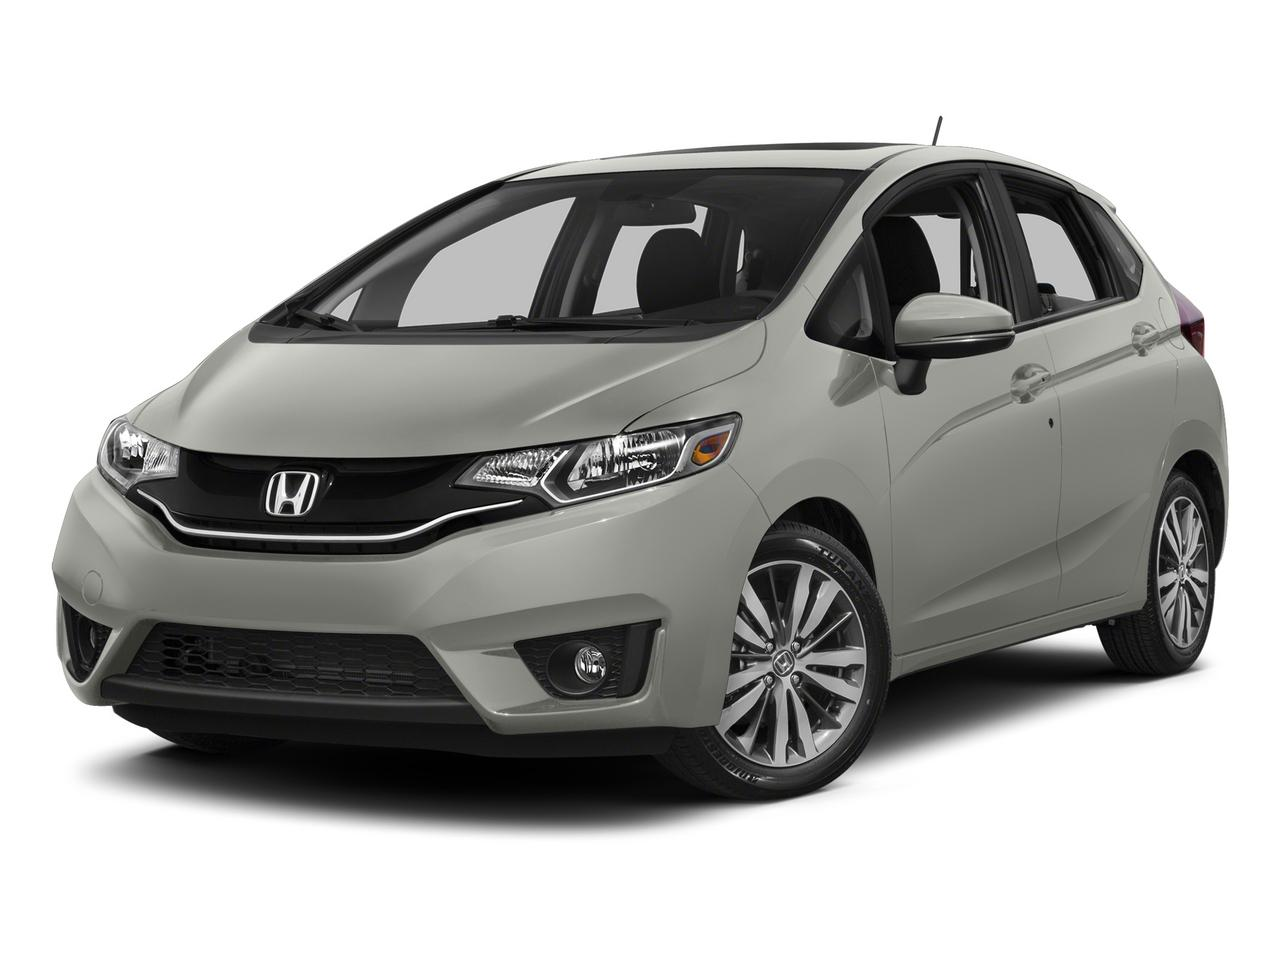 2015 Honda Fit Vehicle Photo in Elyria, OH 44035